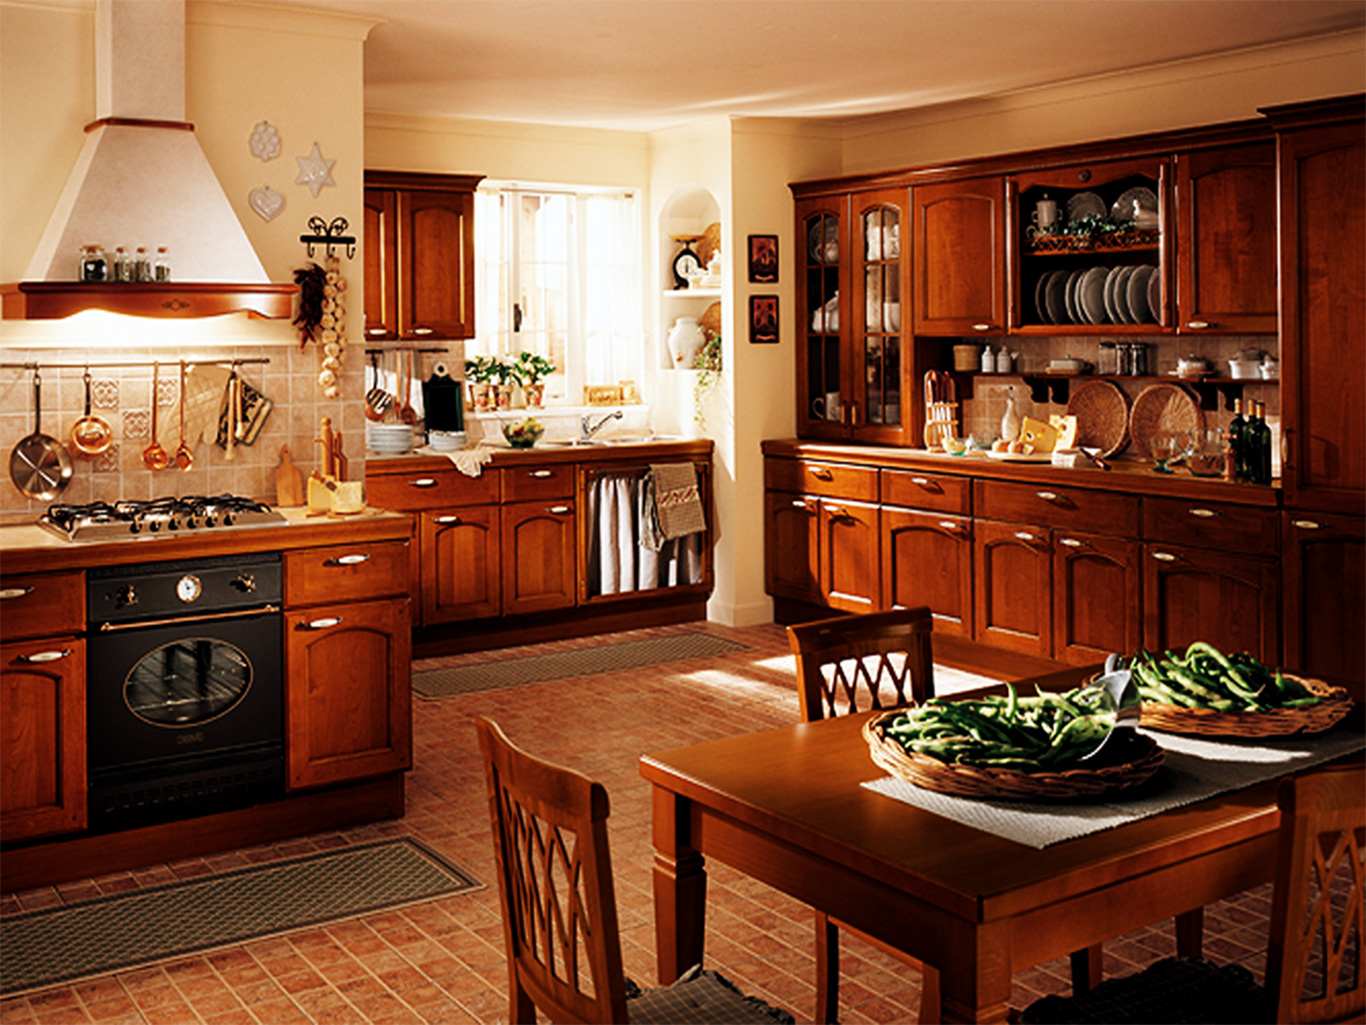 sears kitchen remodeling chrome faucet choose the design for home my